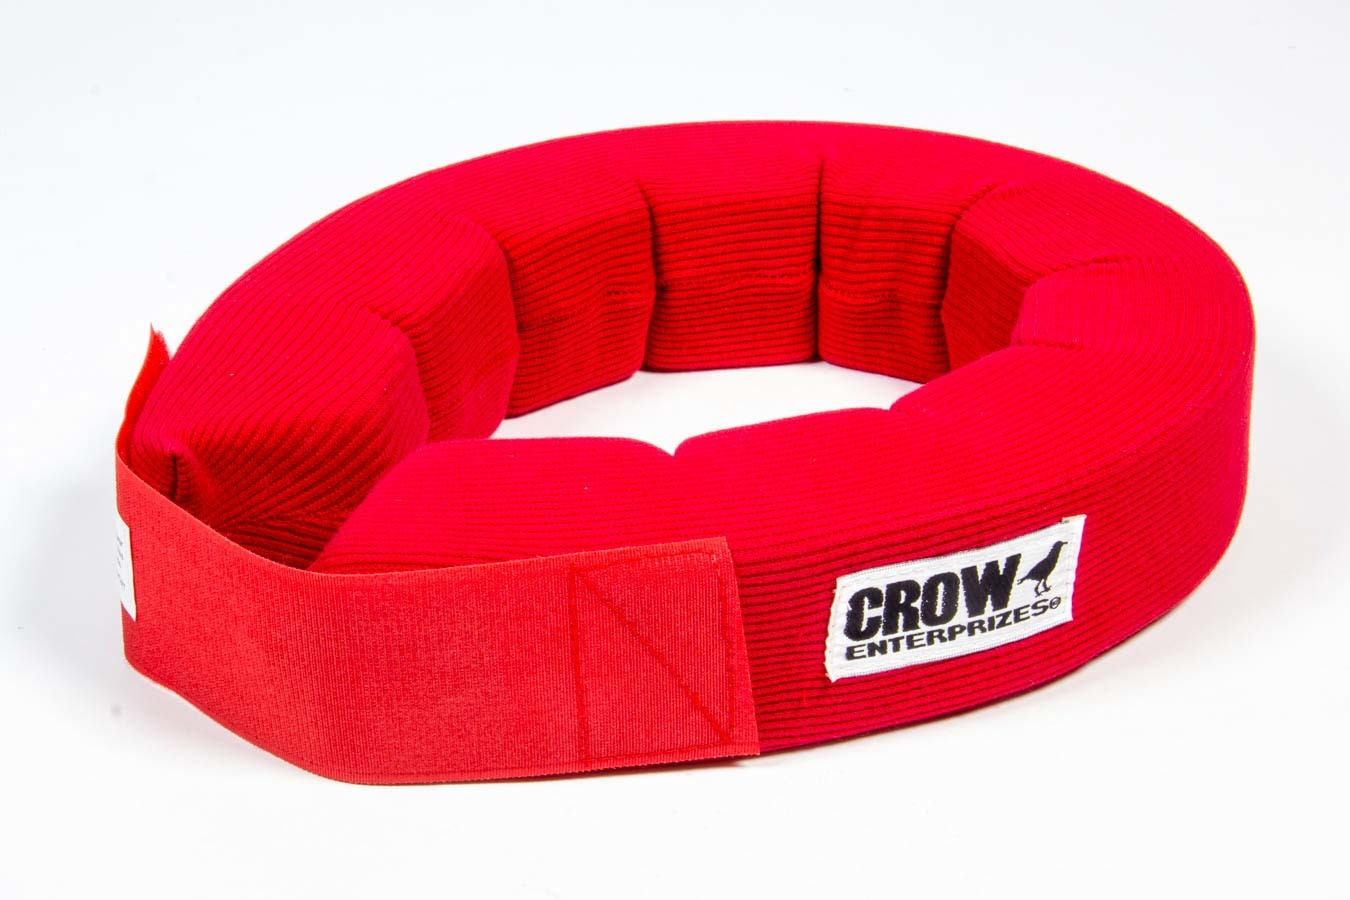 Crow Enterprizes Neck Collar Knitted 360 Degree Red SFI 3.3